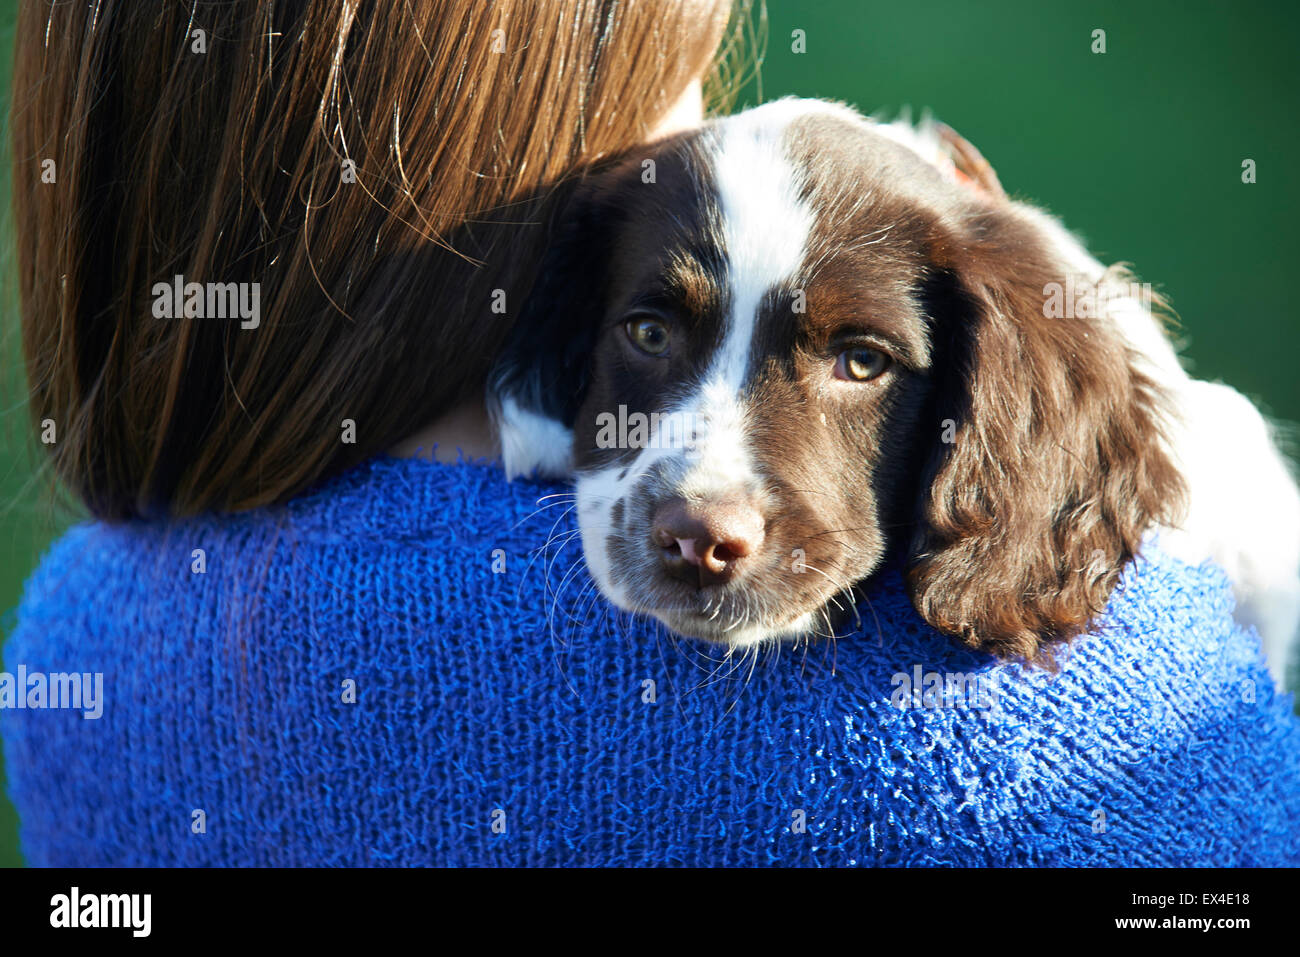 Girl Holding Pet Spaniel Puppy Outdoors In Garden - Stock Image